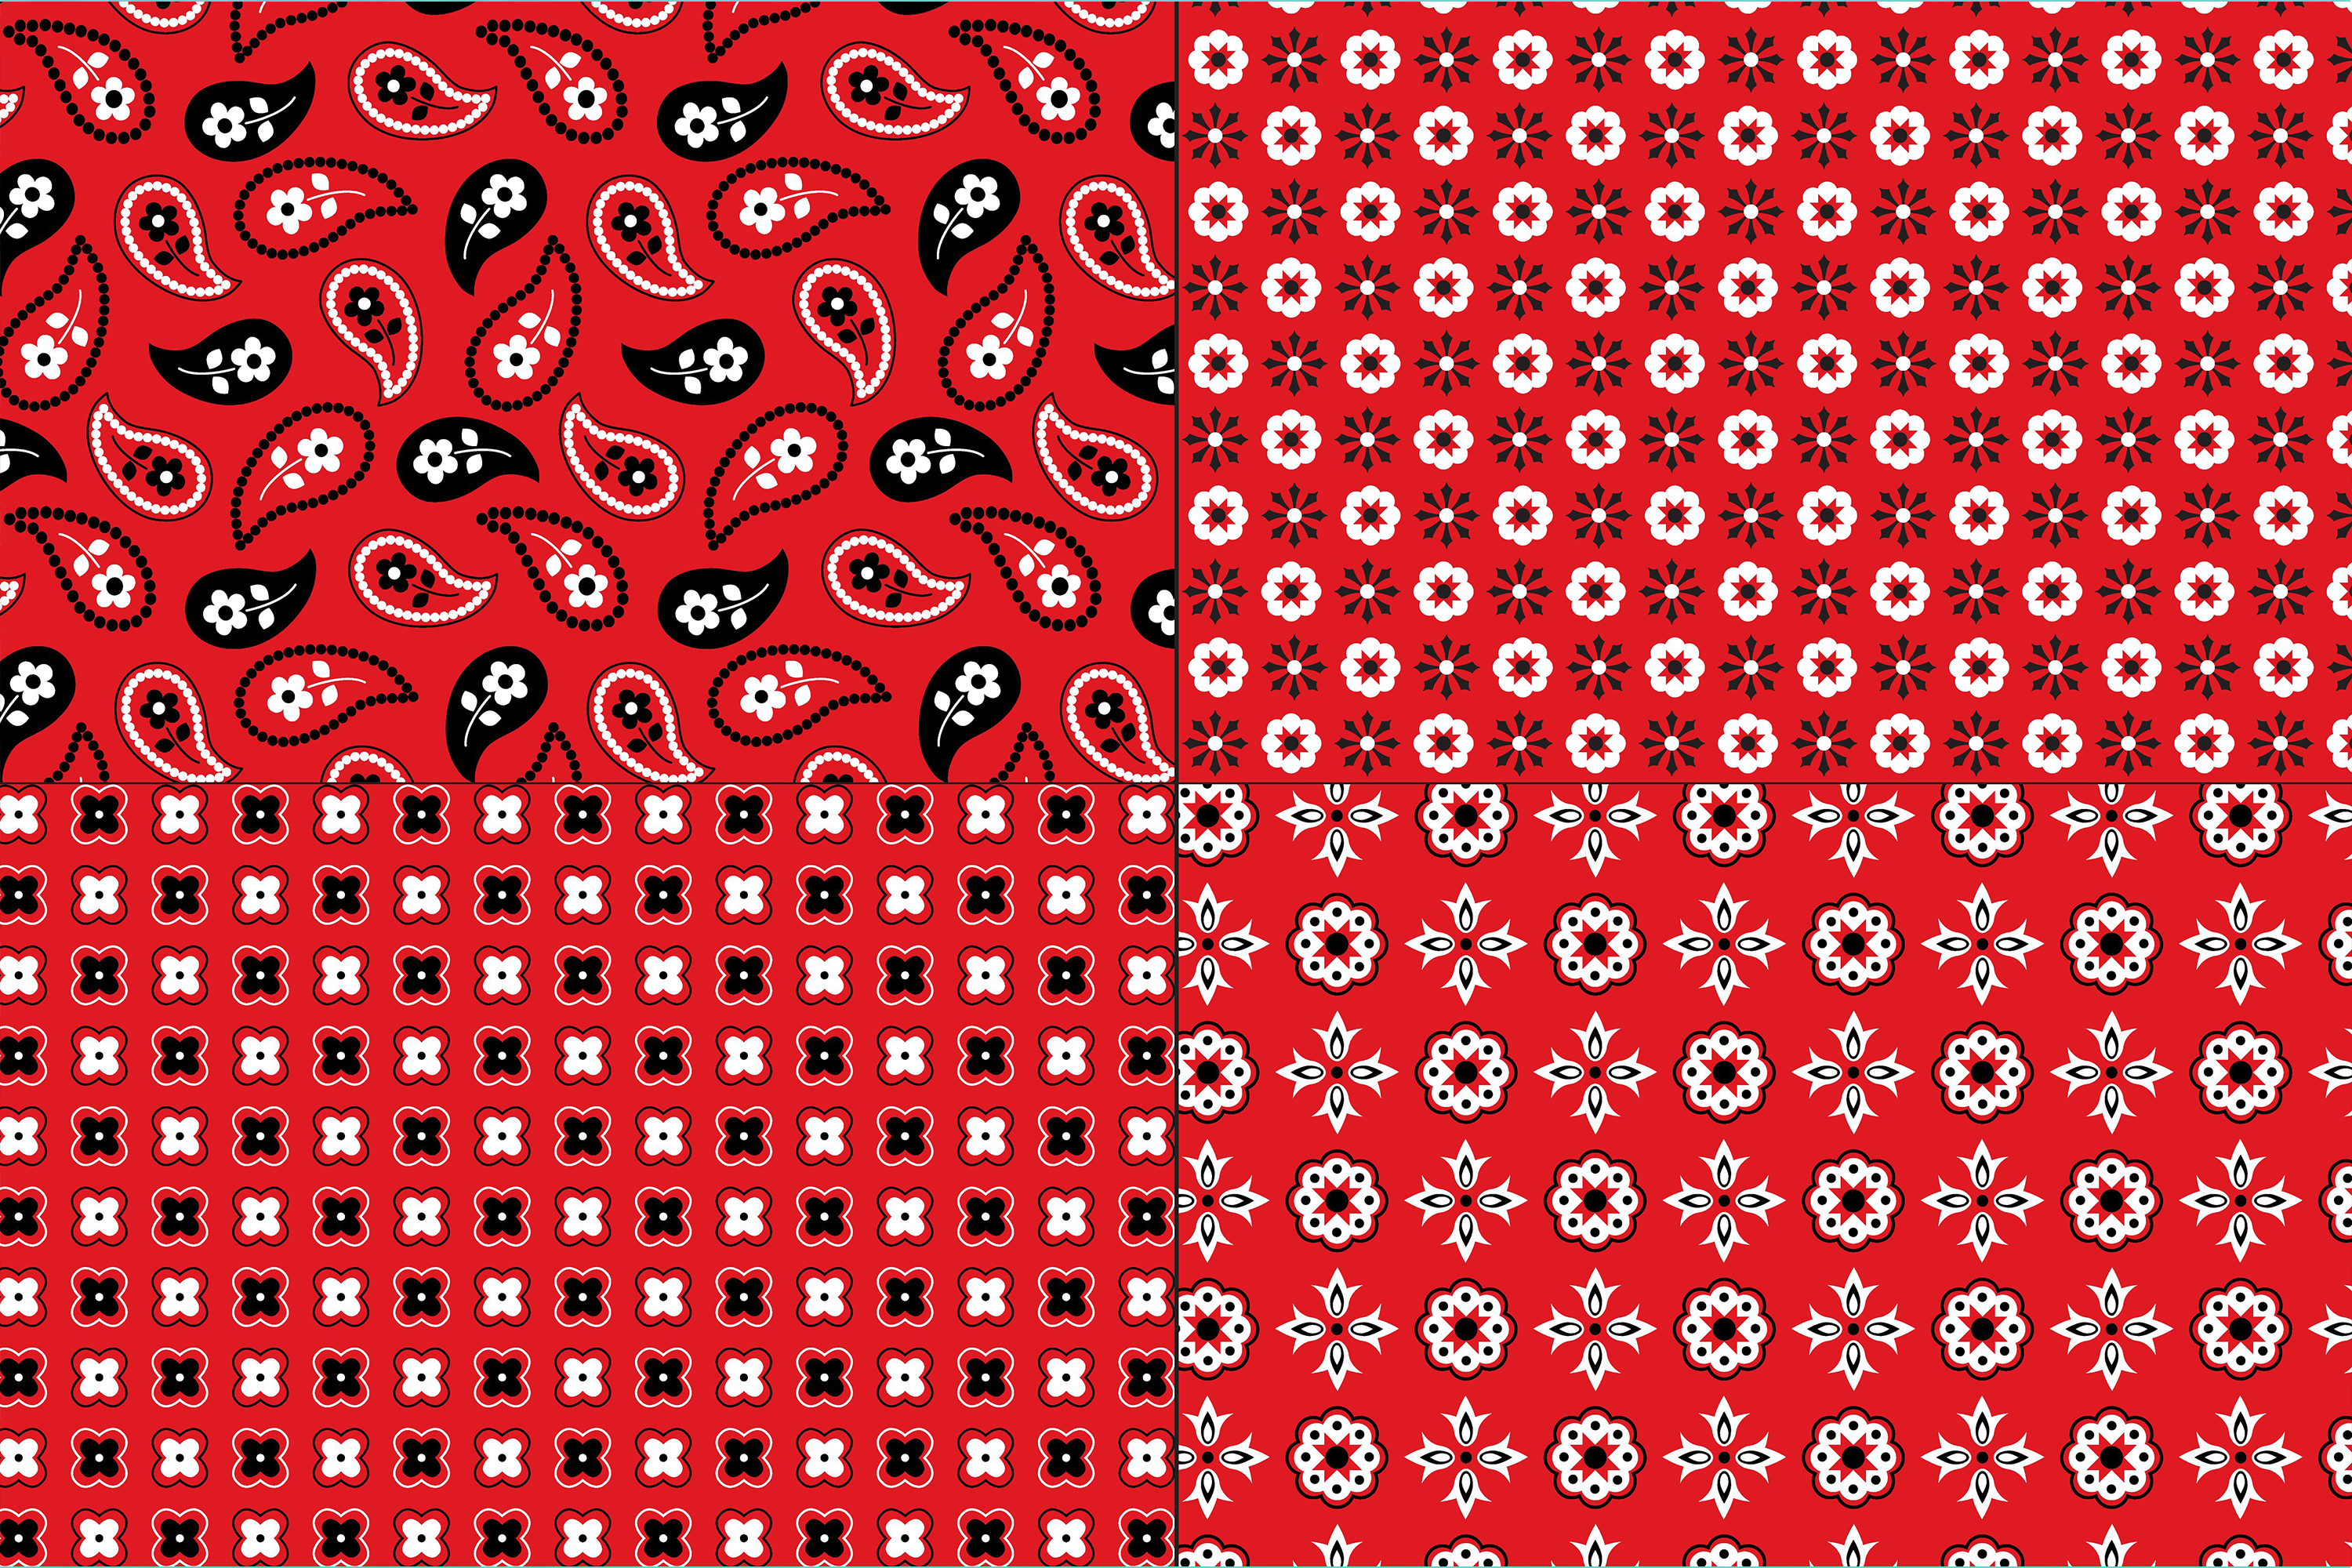 Red Bandana Patterns example image 4